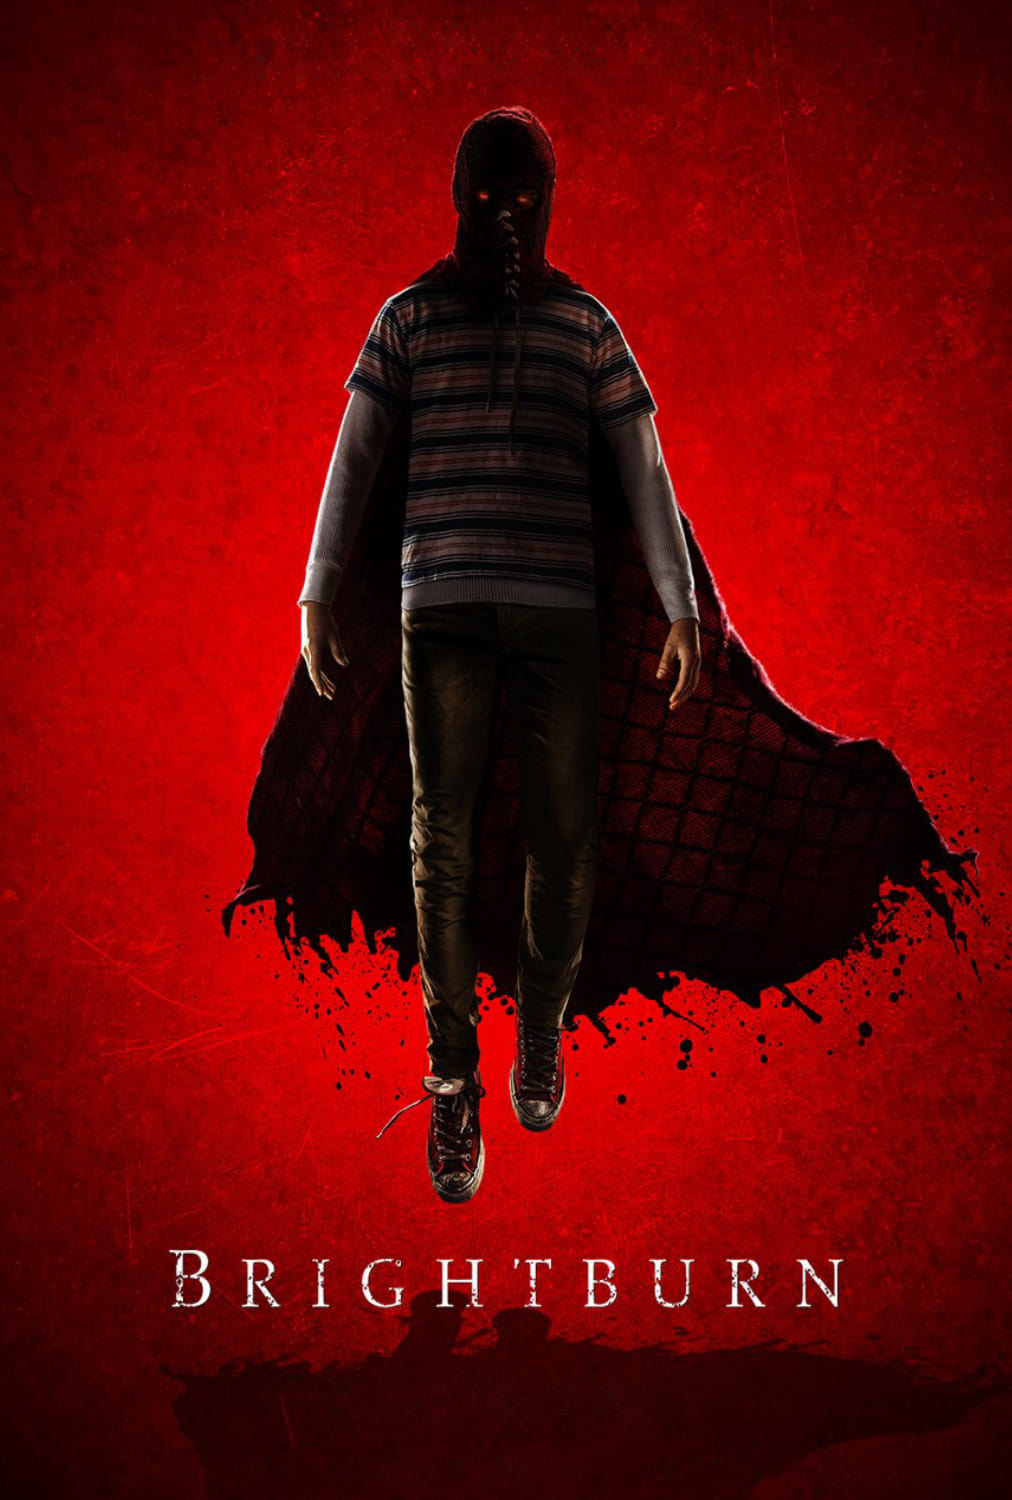 Poster and image movie Film Brightburn - Brightburn -  2019